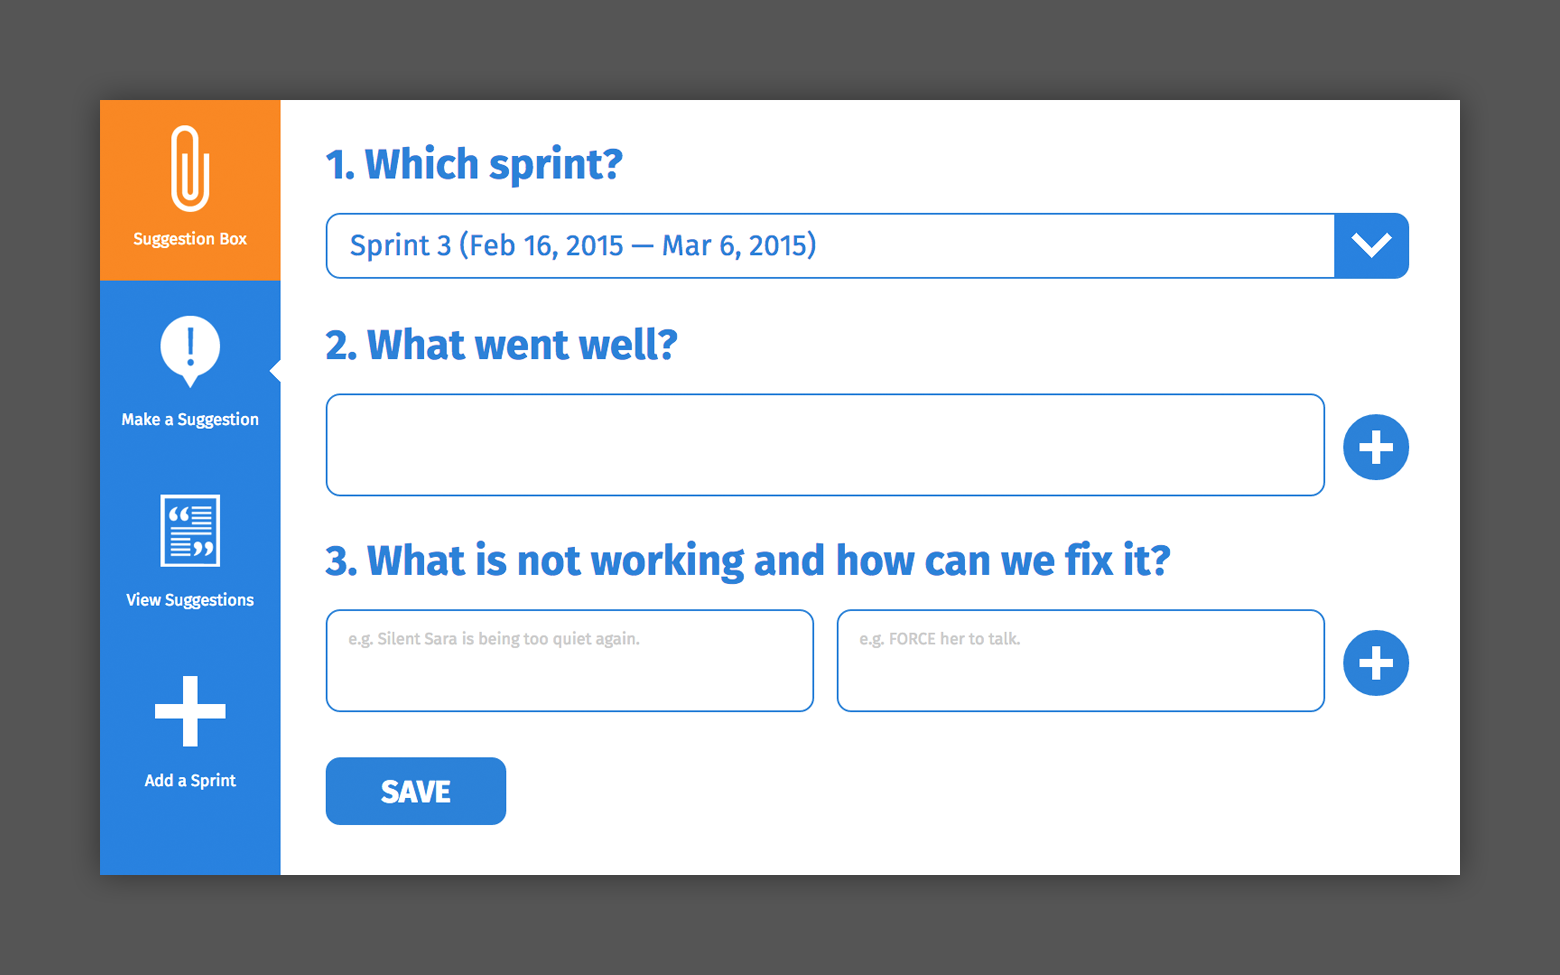 An app used to accept suggestions on how a team can make improvements. Contains a dropdown box where the user can select sprint, an input for what went well and an input for what is not working and how it can be fixed